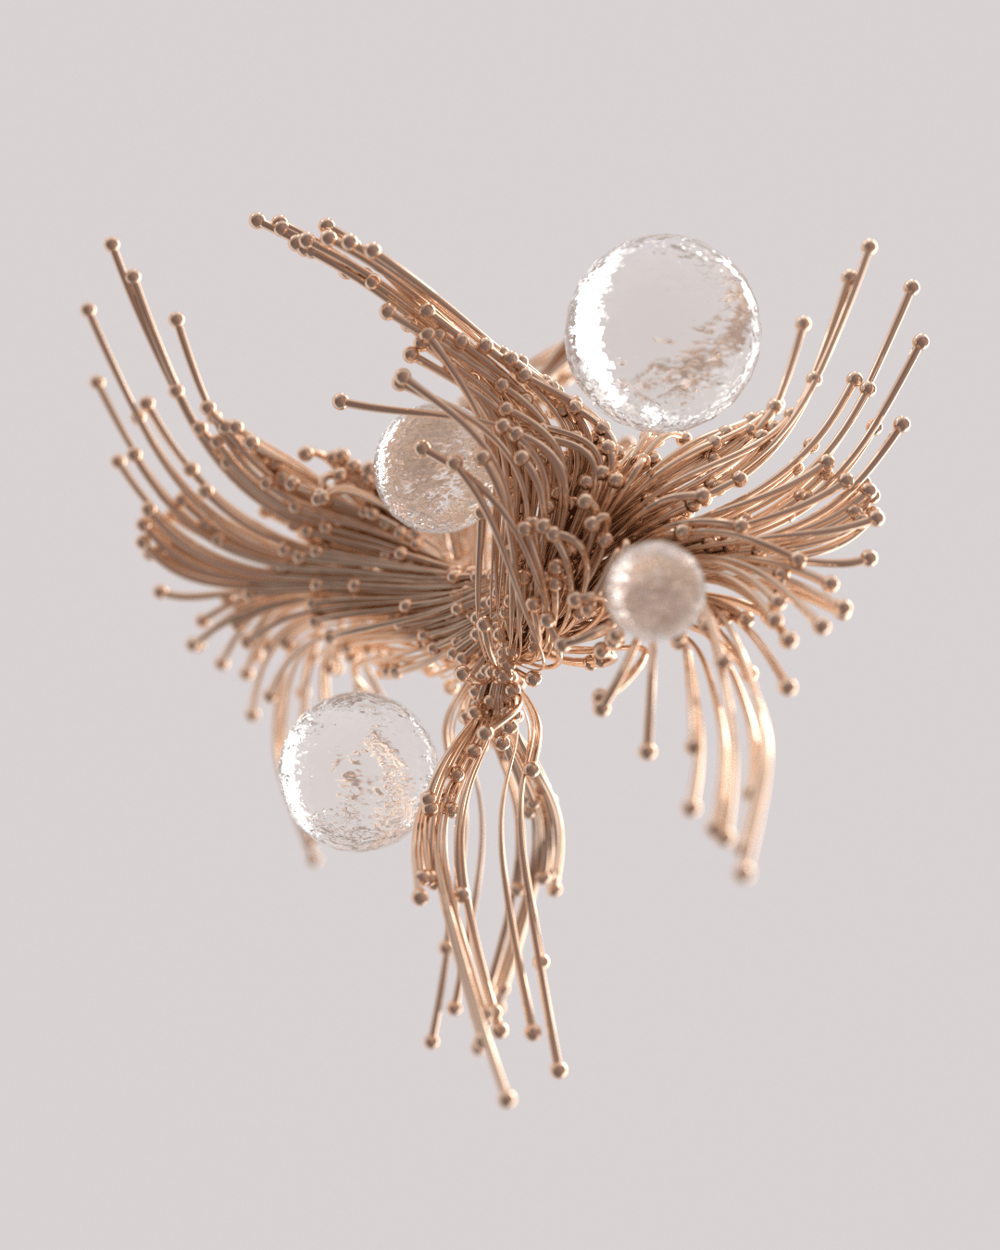 Flowing Tendrils in Redshift - image 2 - student project